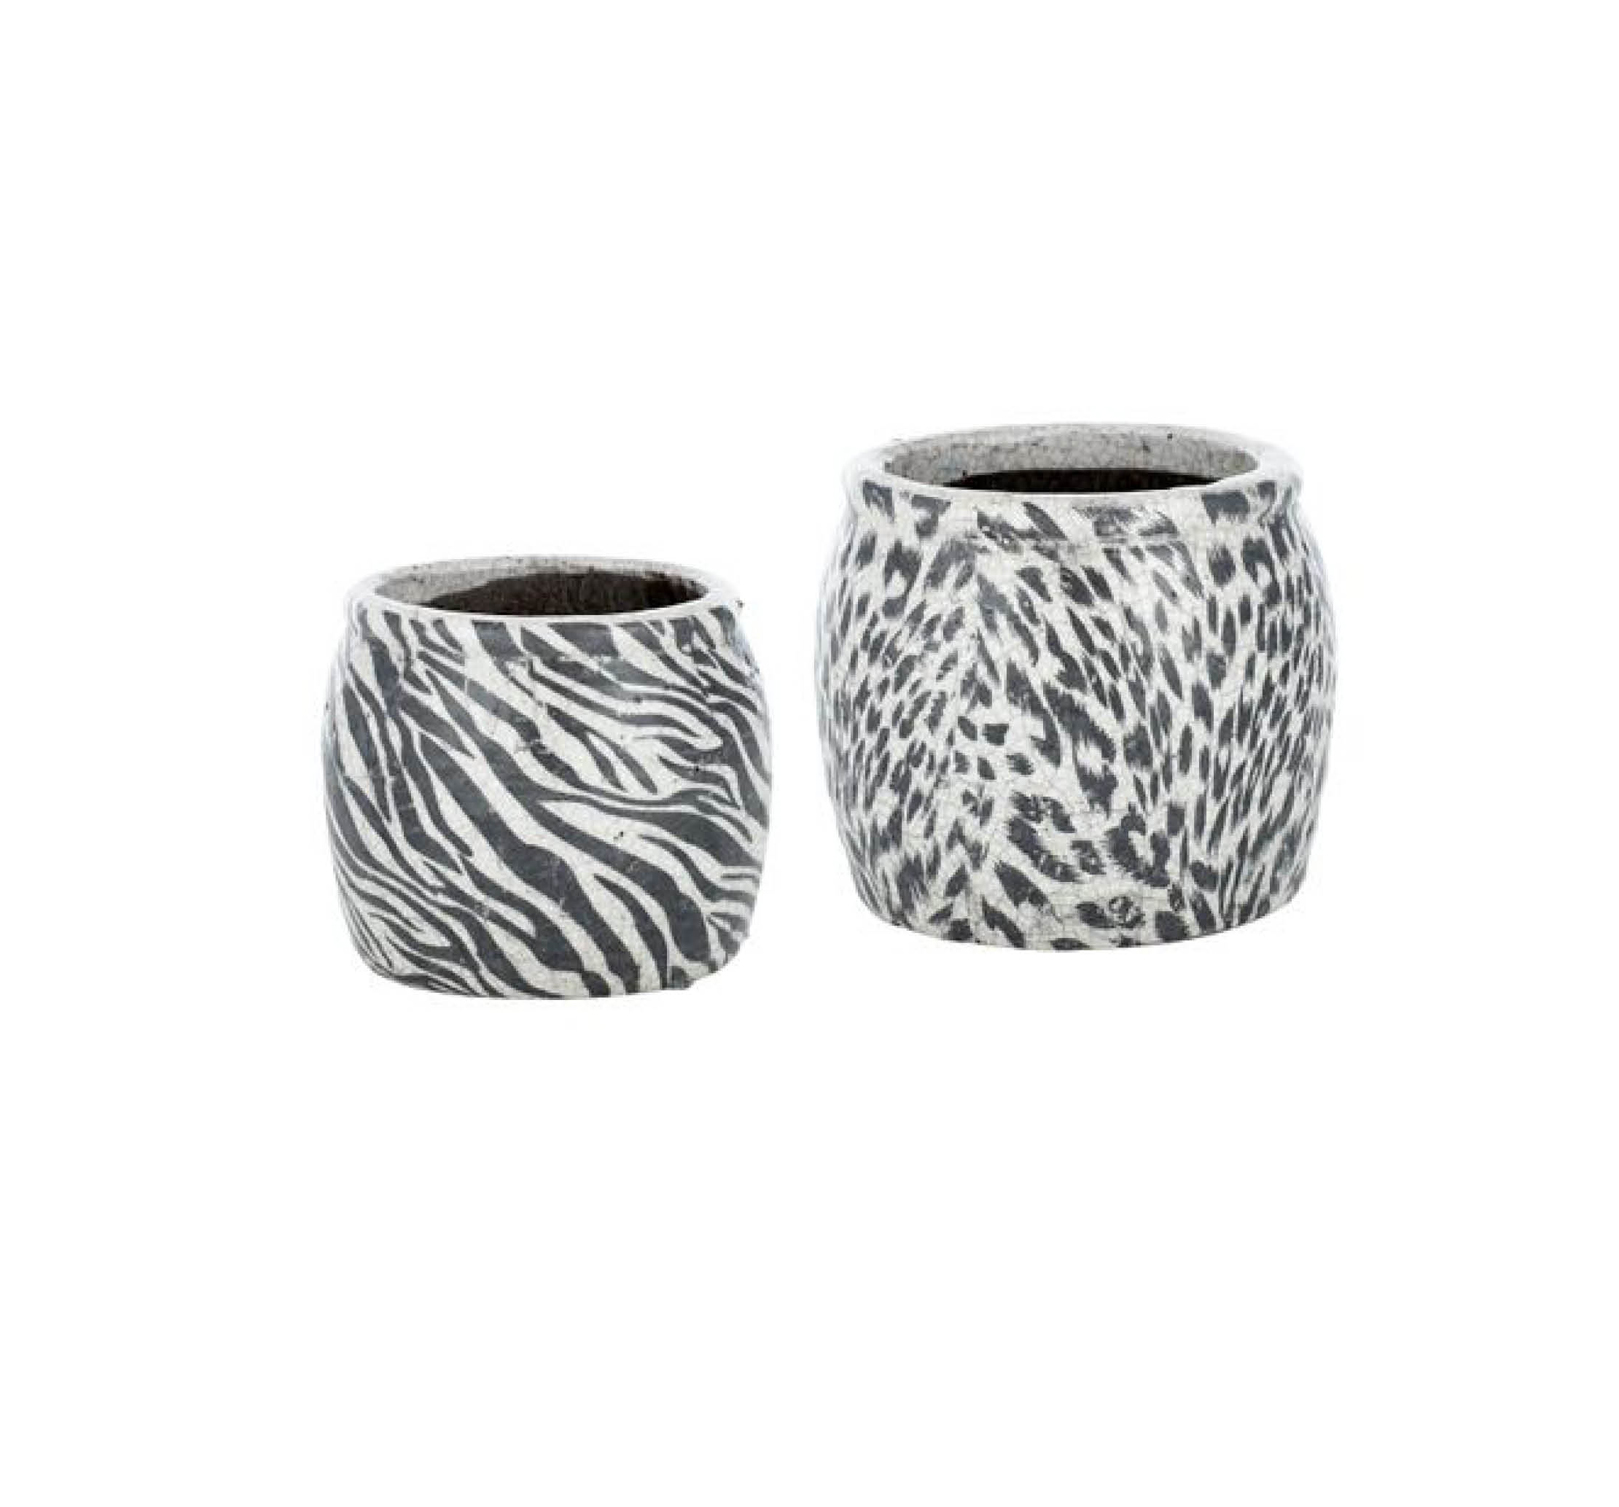 'Animal' pots from